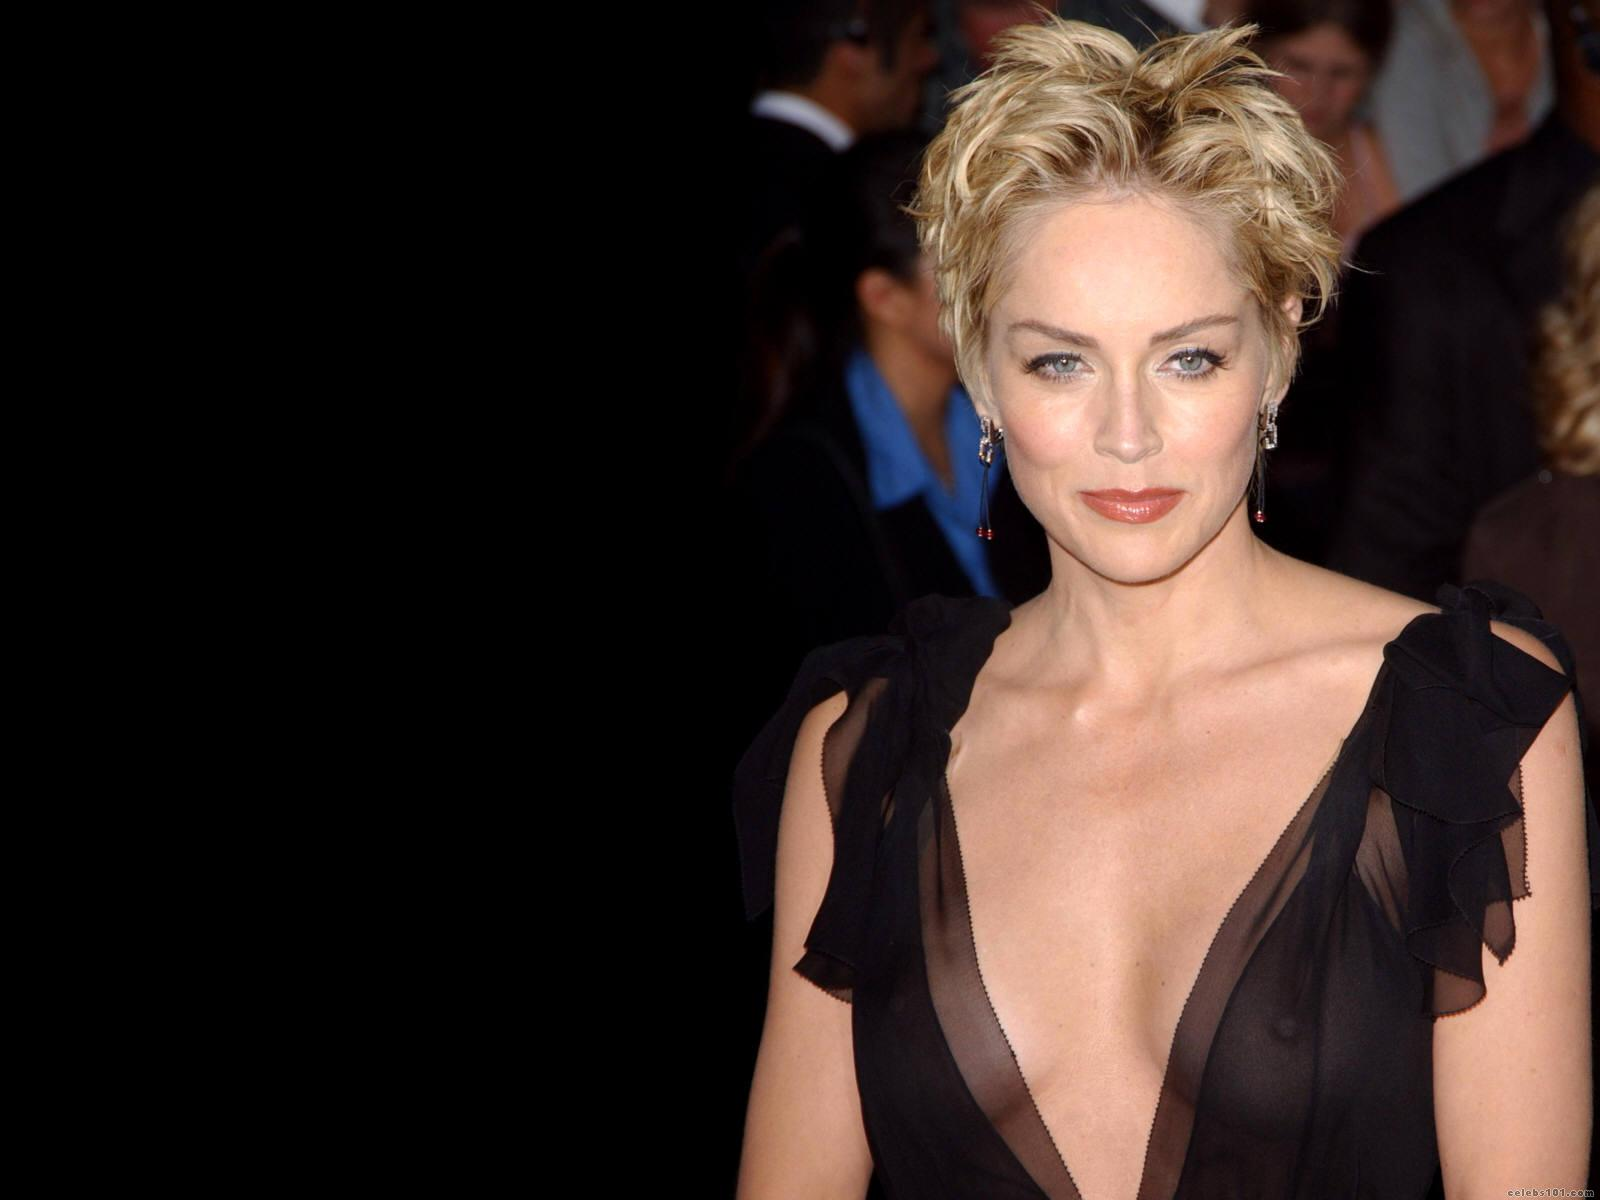 Sharon Stone – Things You Never Knew About 'Basic Instinct'